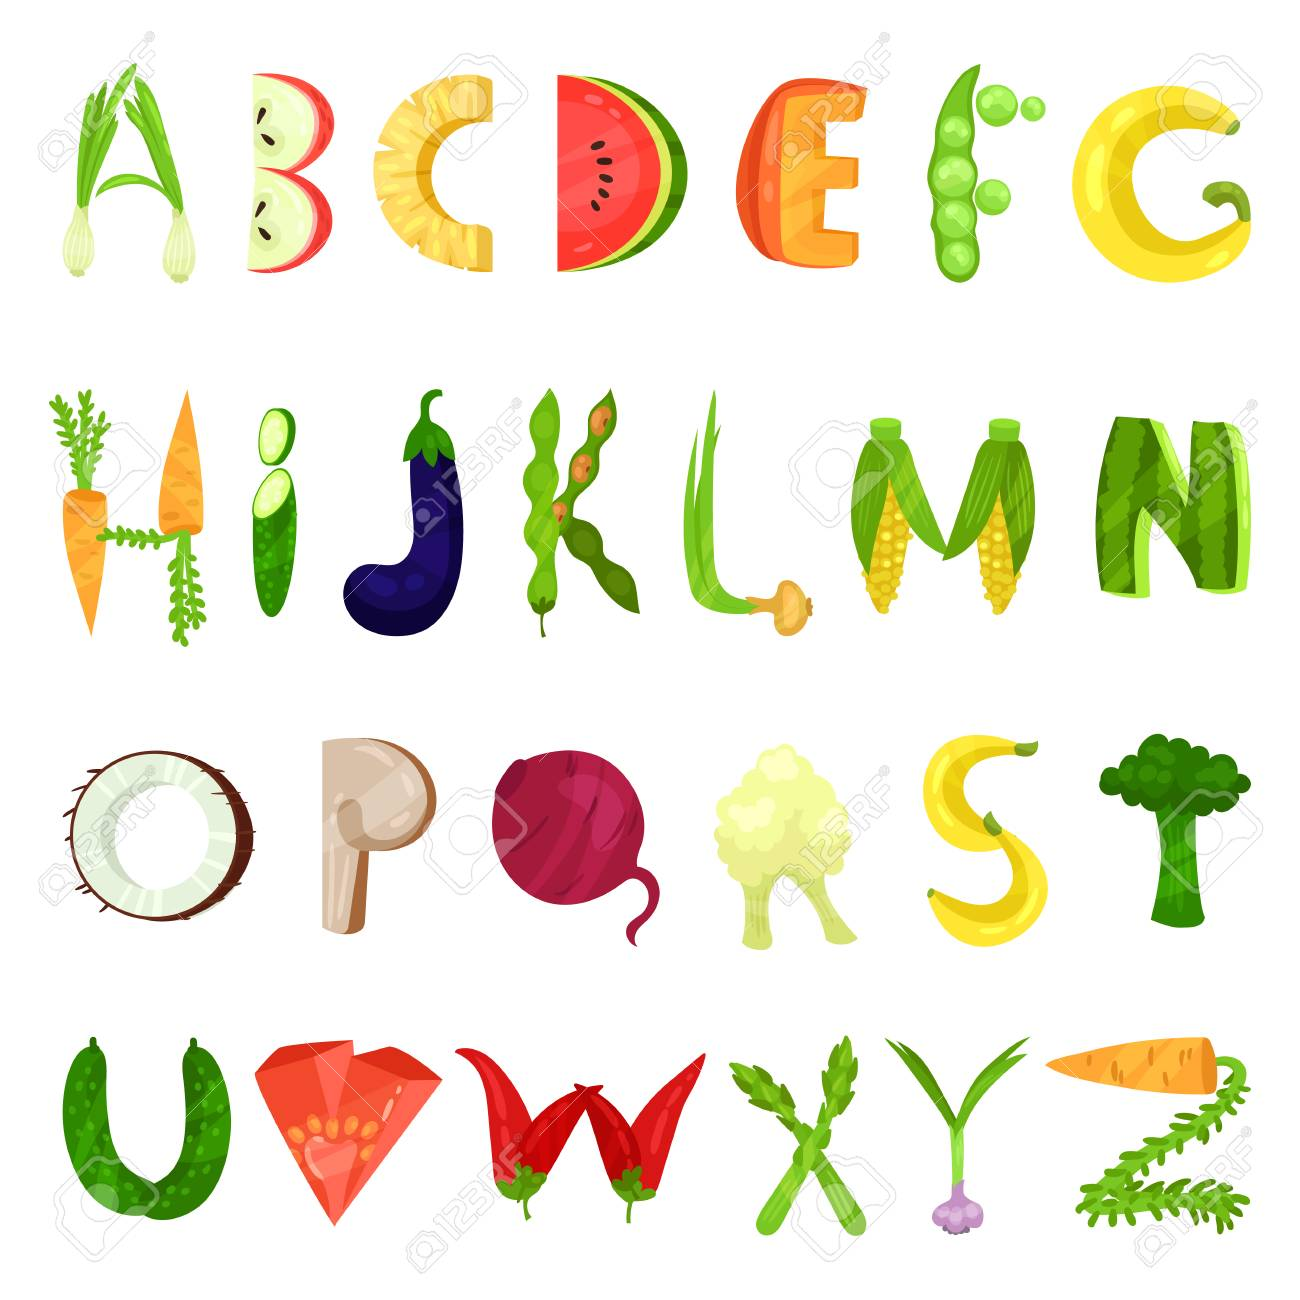 Veggie English alphabet letters made from fresh vegetables vector Illustration isolated on a white background. - 110013746